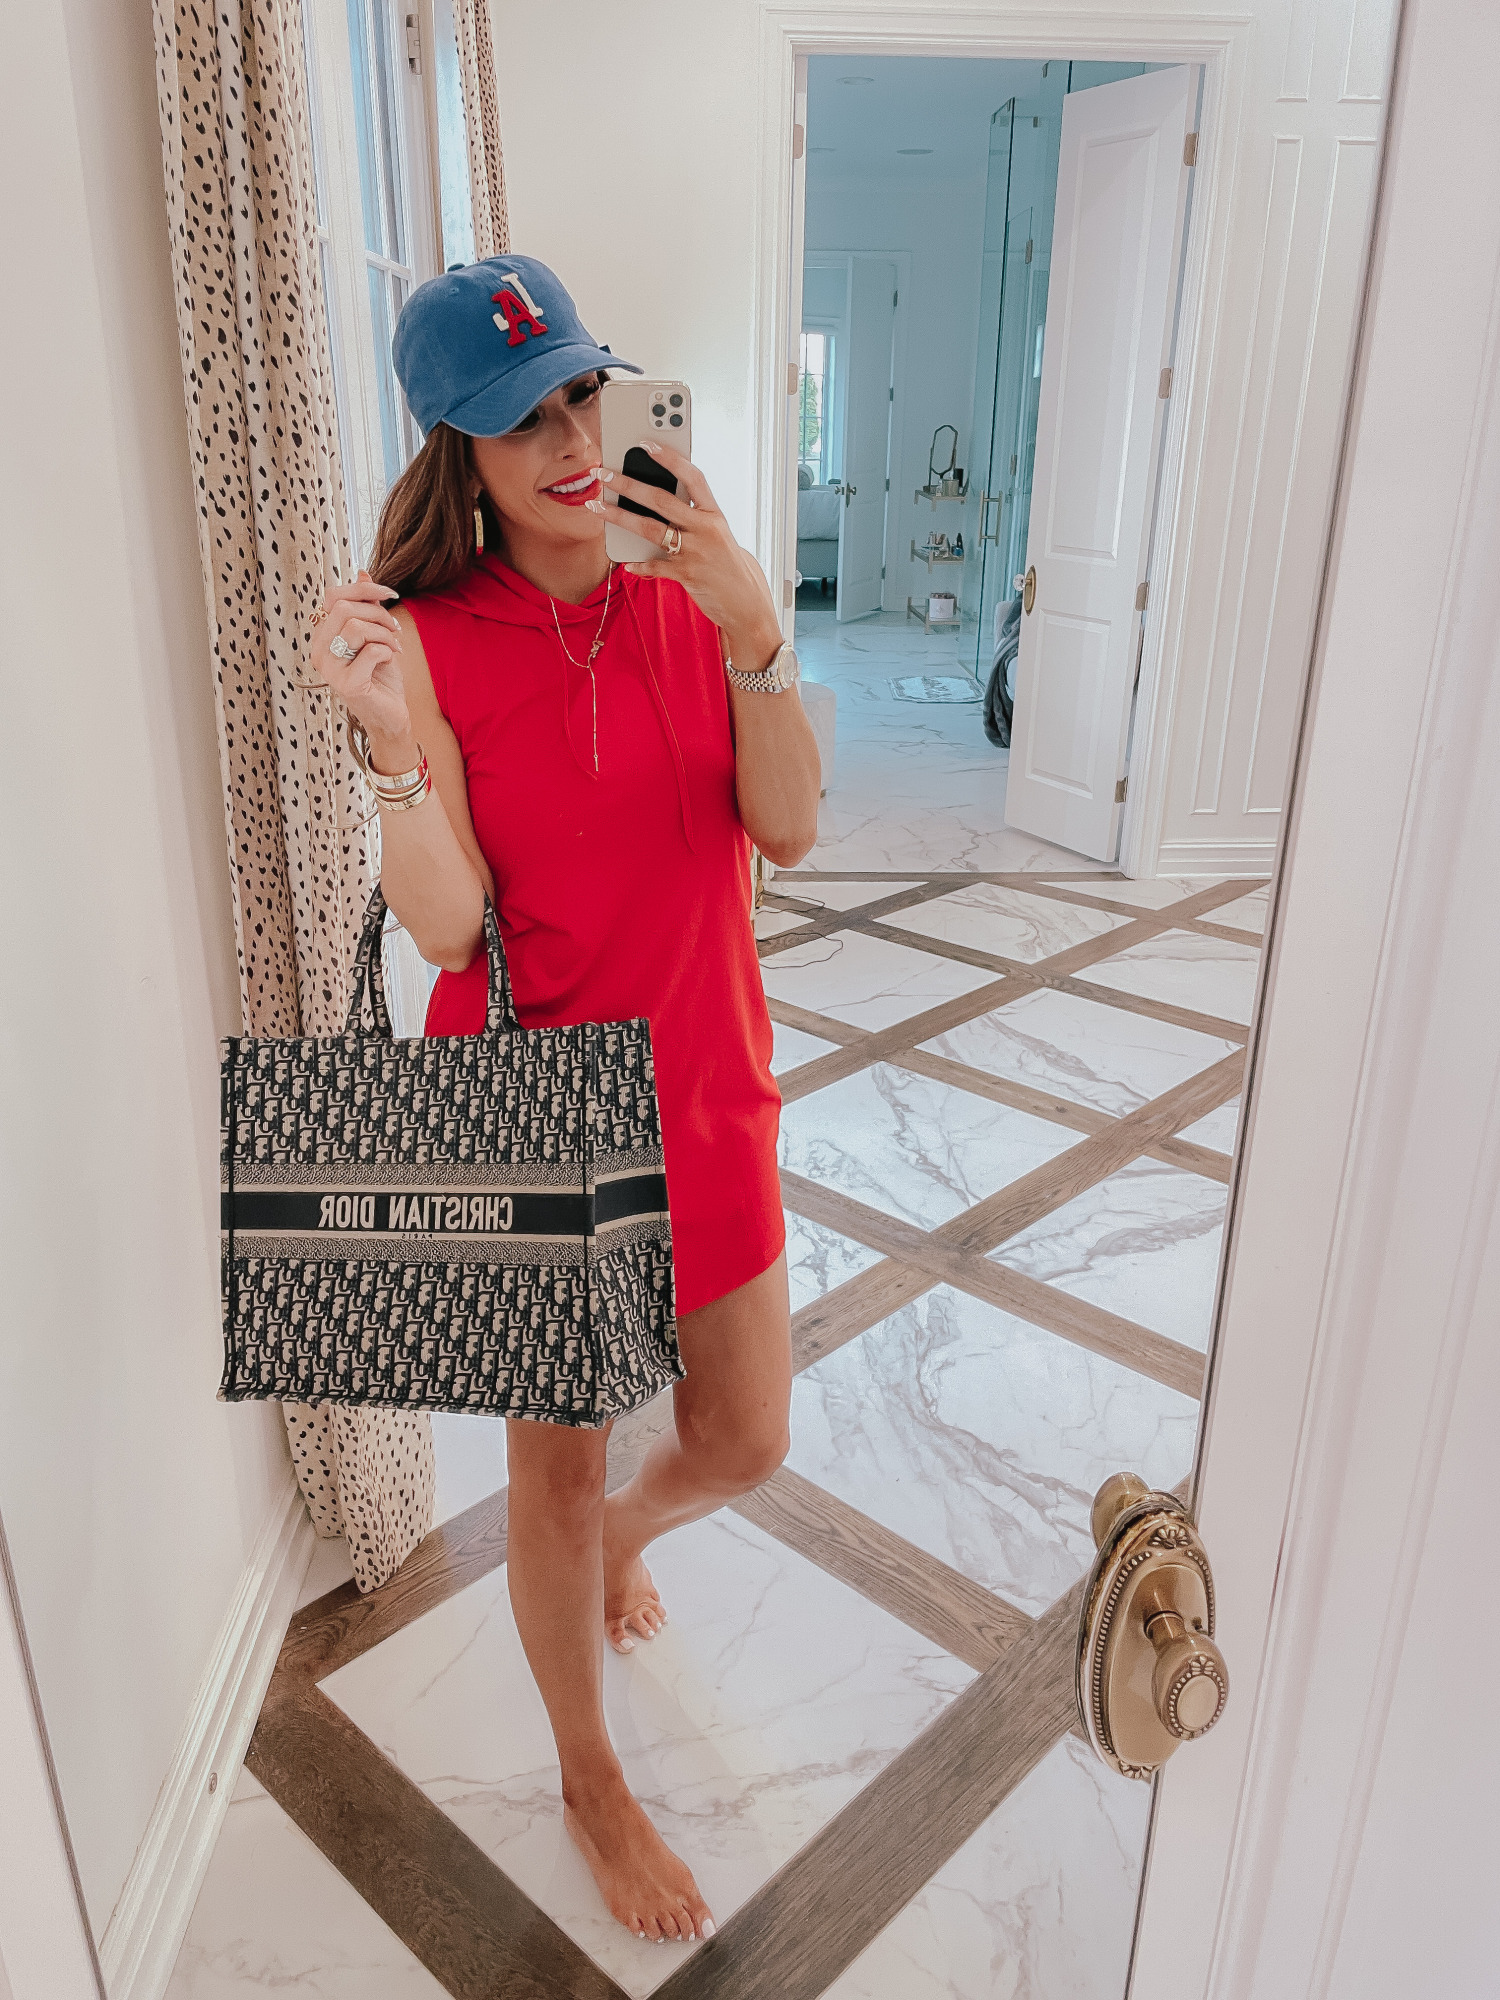 july 4 outfit inspiration 2021, pinterest july 4 outfit, gucci red lipstick, dior book tote navy, Emily gemma | June Instagram Recap by popular US fashion blog, The Sweetest Thing: image of Emily Gemma wearing a blue baseball cap, red sleeveless hoodie dress, and holding a Christian Dior tote bag.